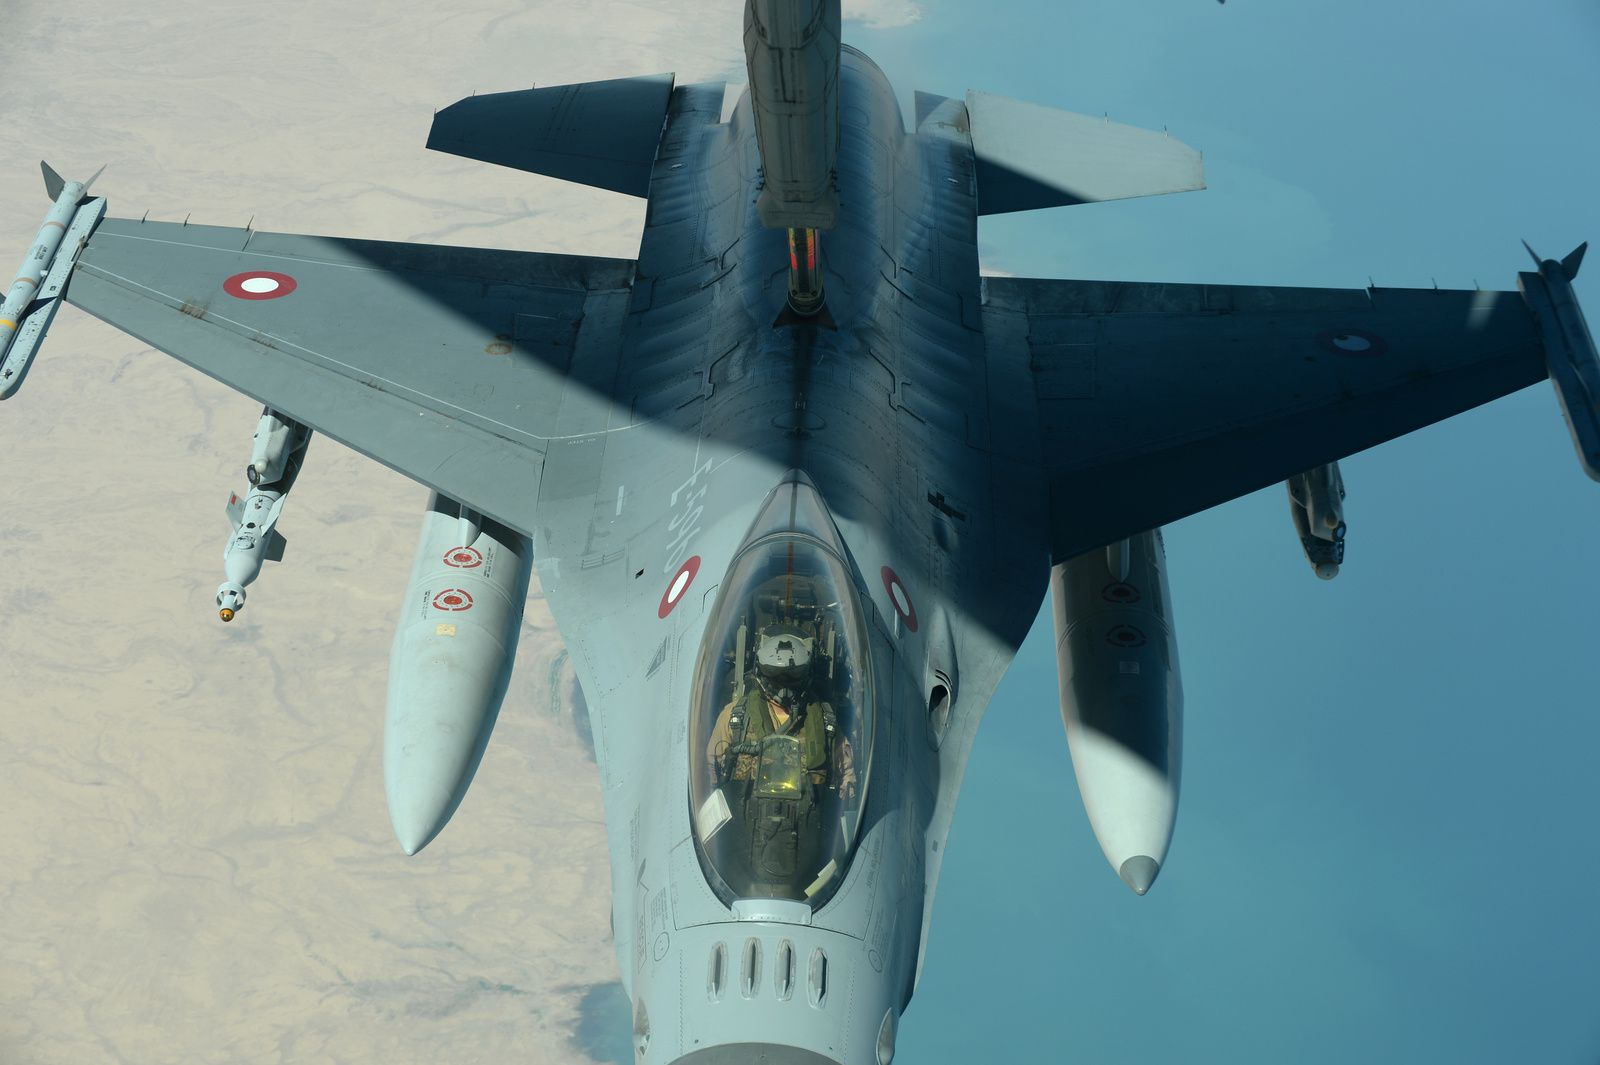 Le Danemark va se désengager de l'opération internationale Inherent Resolve